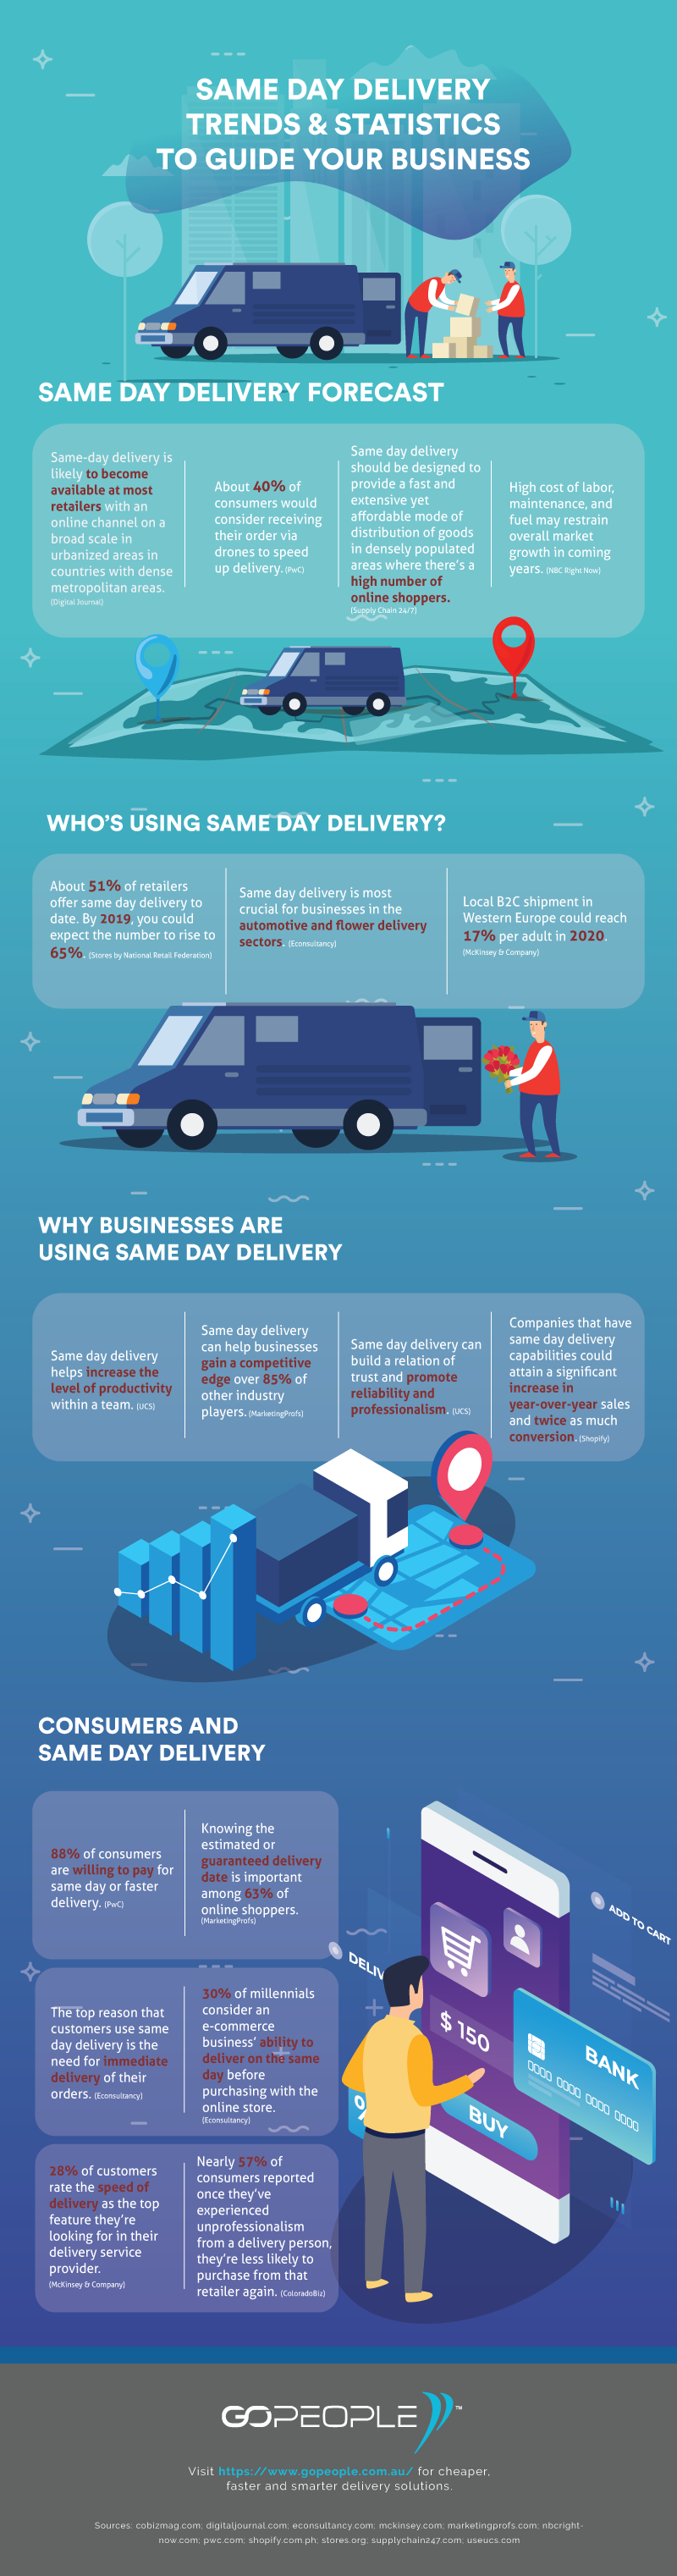 Same-Day-Delivery-Trends-and-Statistics-to-Guide-Your-Business-Infographic-plaza